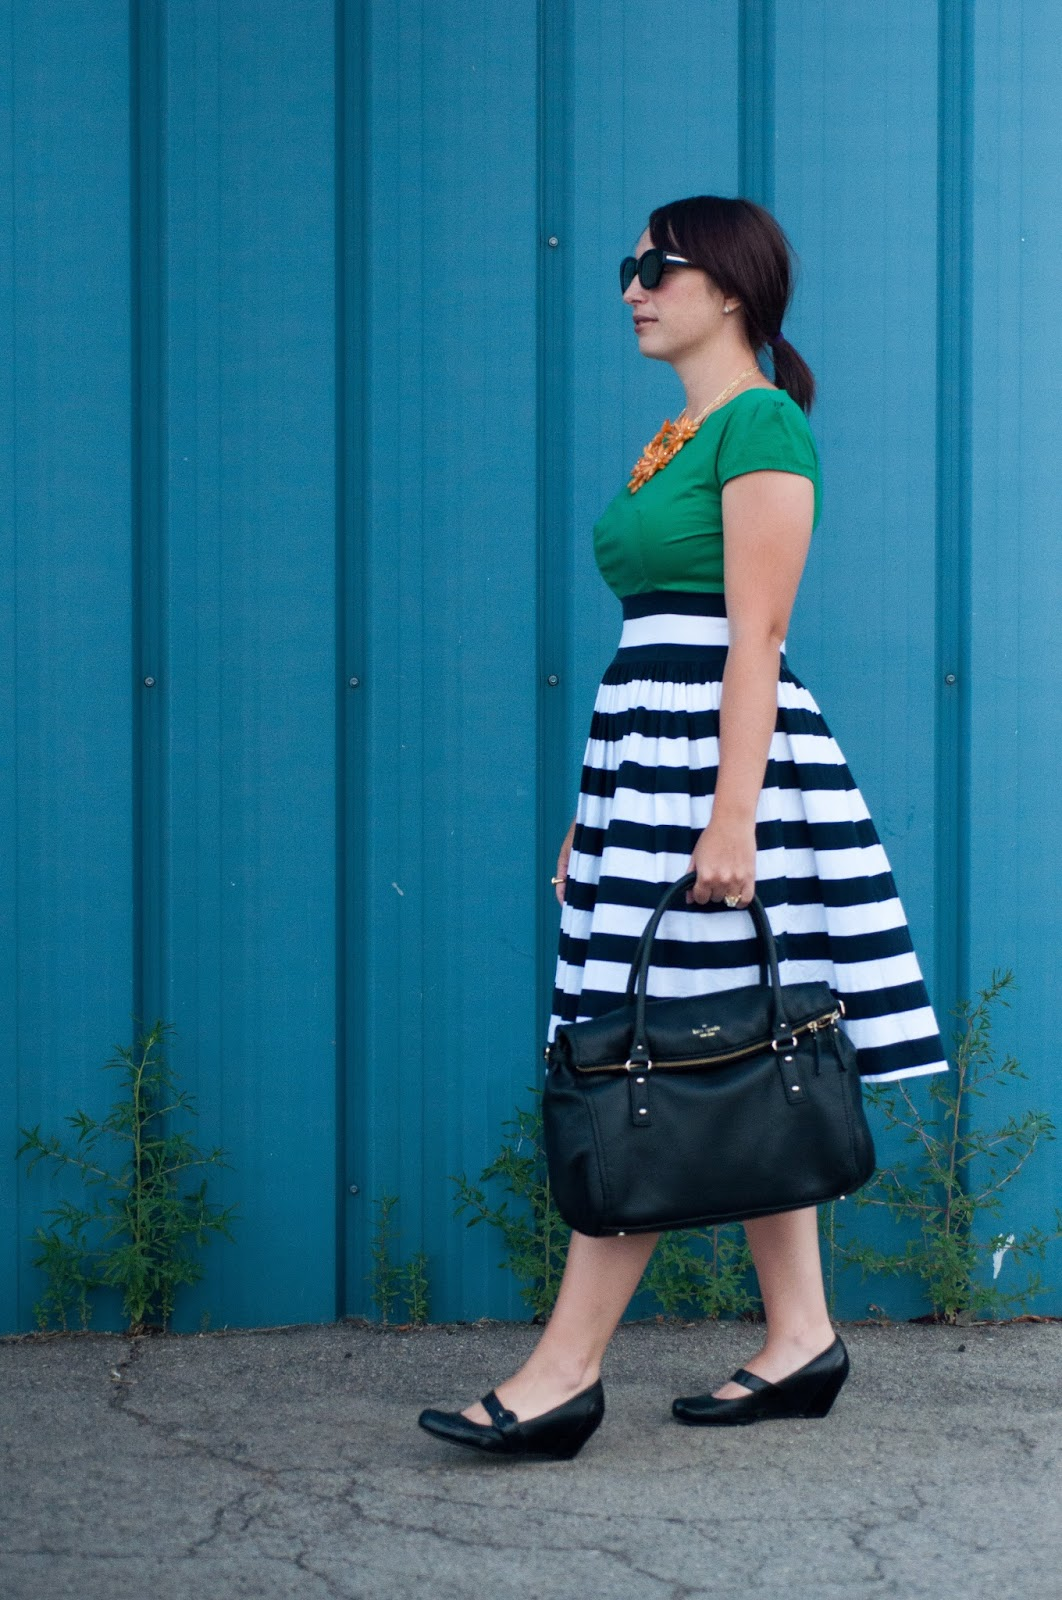 shabby apple gondola dress, shabby apple dress, stripe dress, kate spade handbag, karen walker sunglasses, ootd